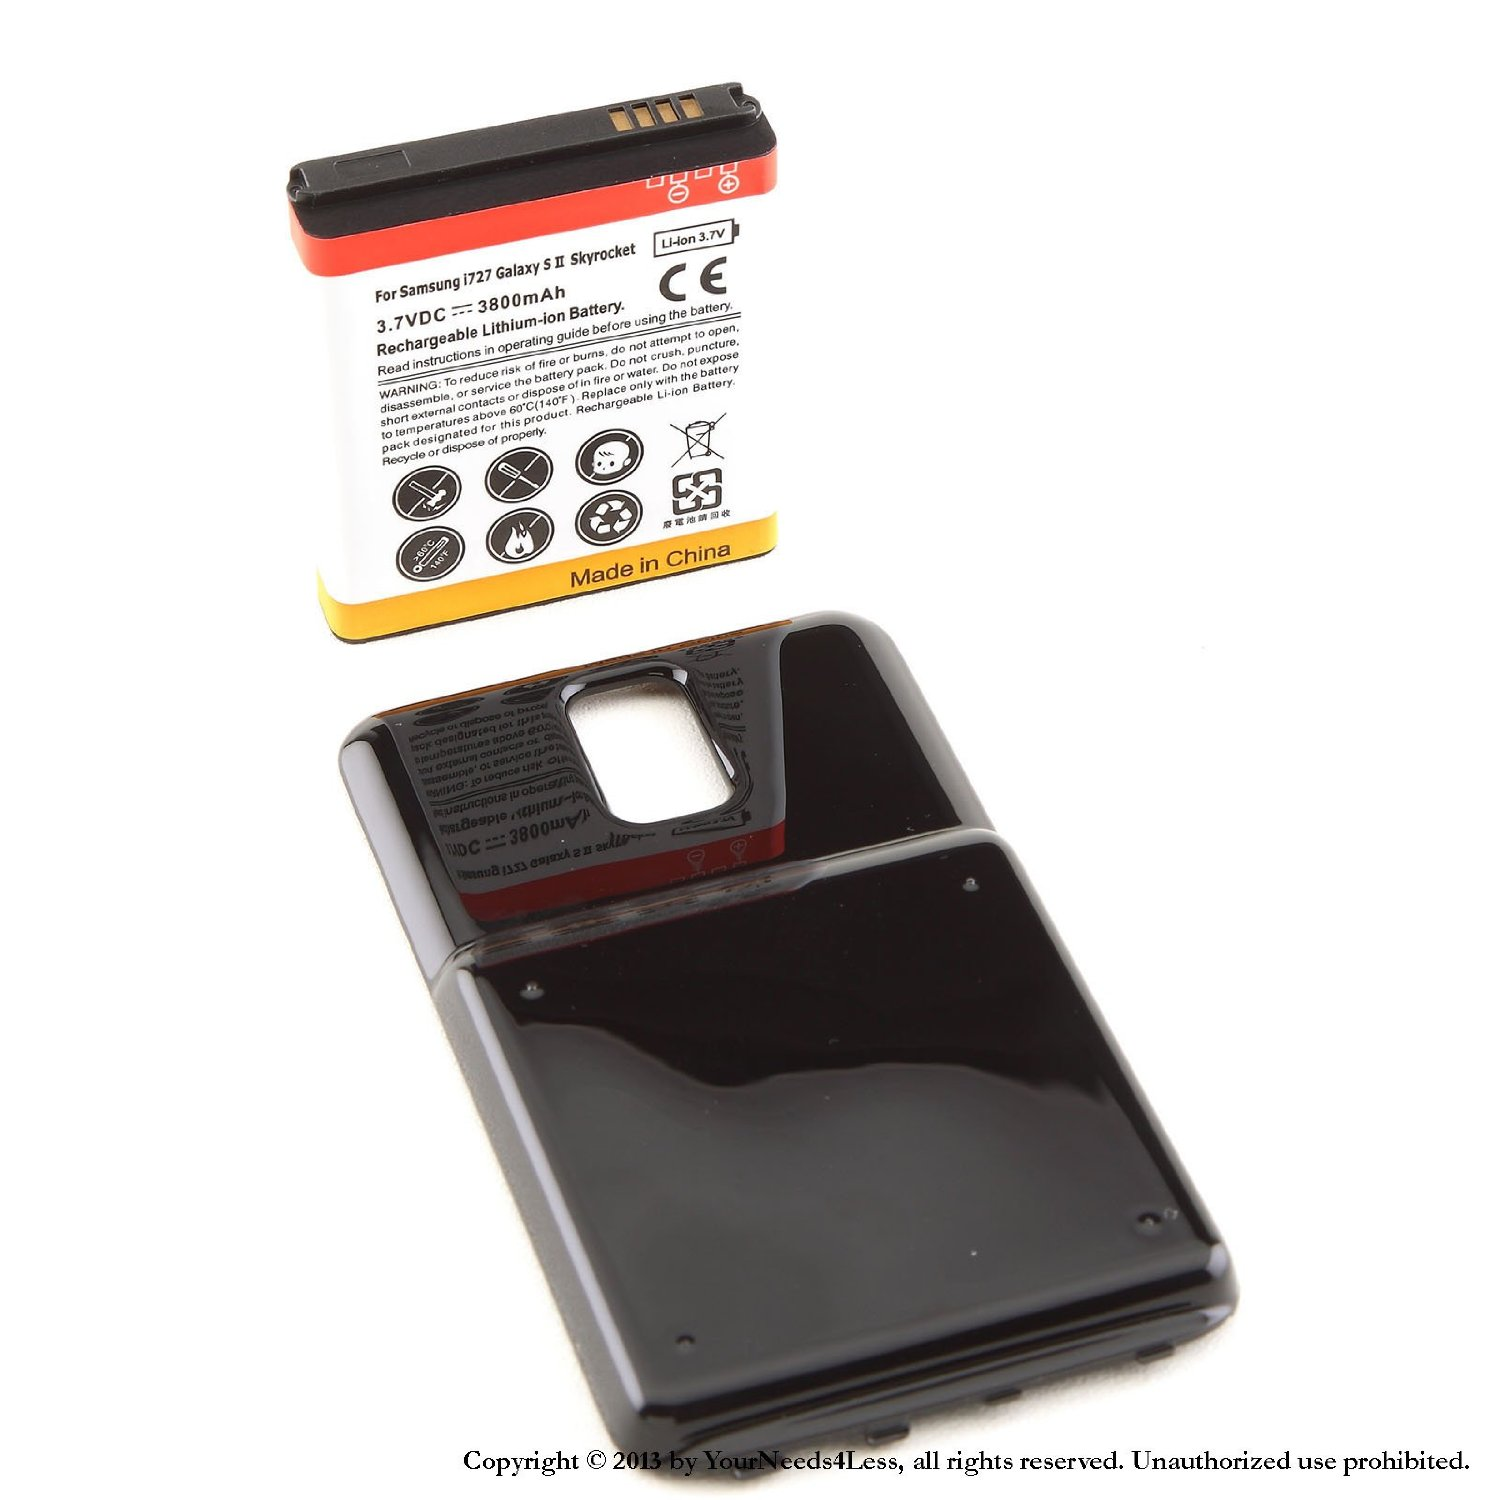 YN4L® 3800mAh extended battery for Samsung Galaxy S II 2 Skyrocket i727 AT&T + Black cover